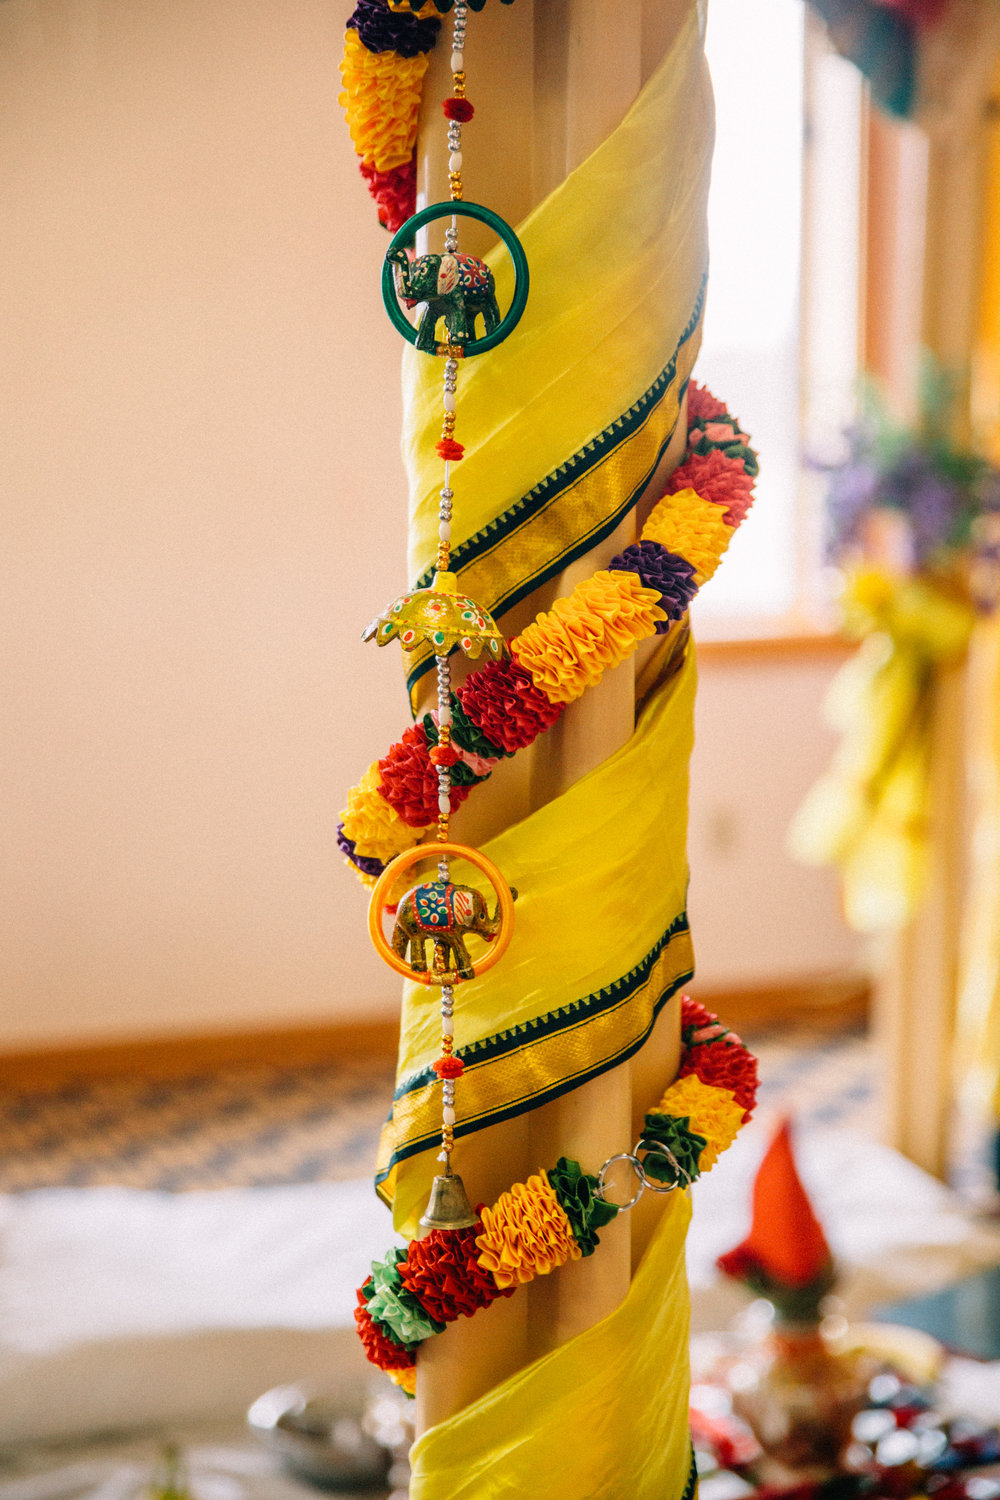 Hindu wedding decorations elephants and bells with bright colored sashes yellow and red